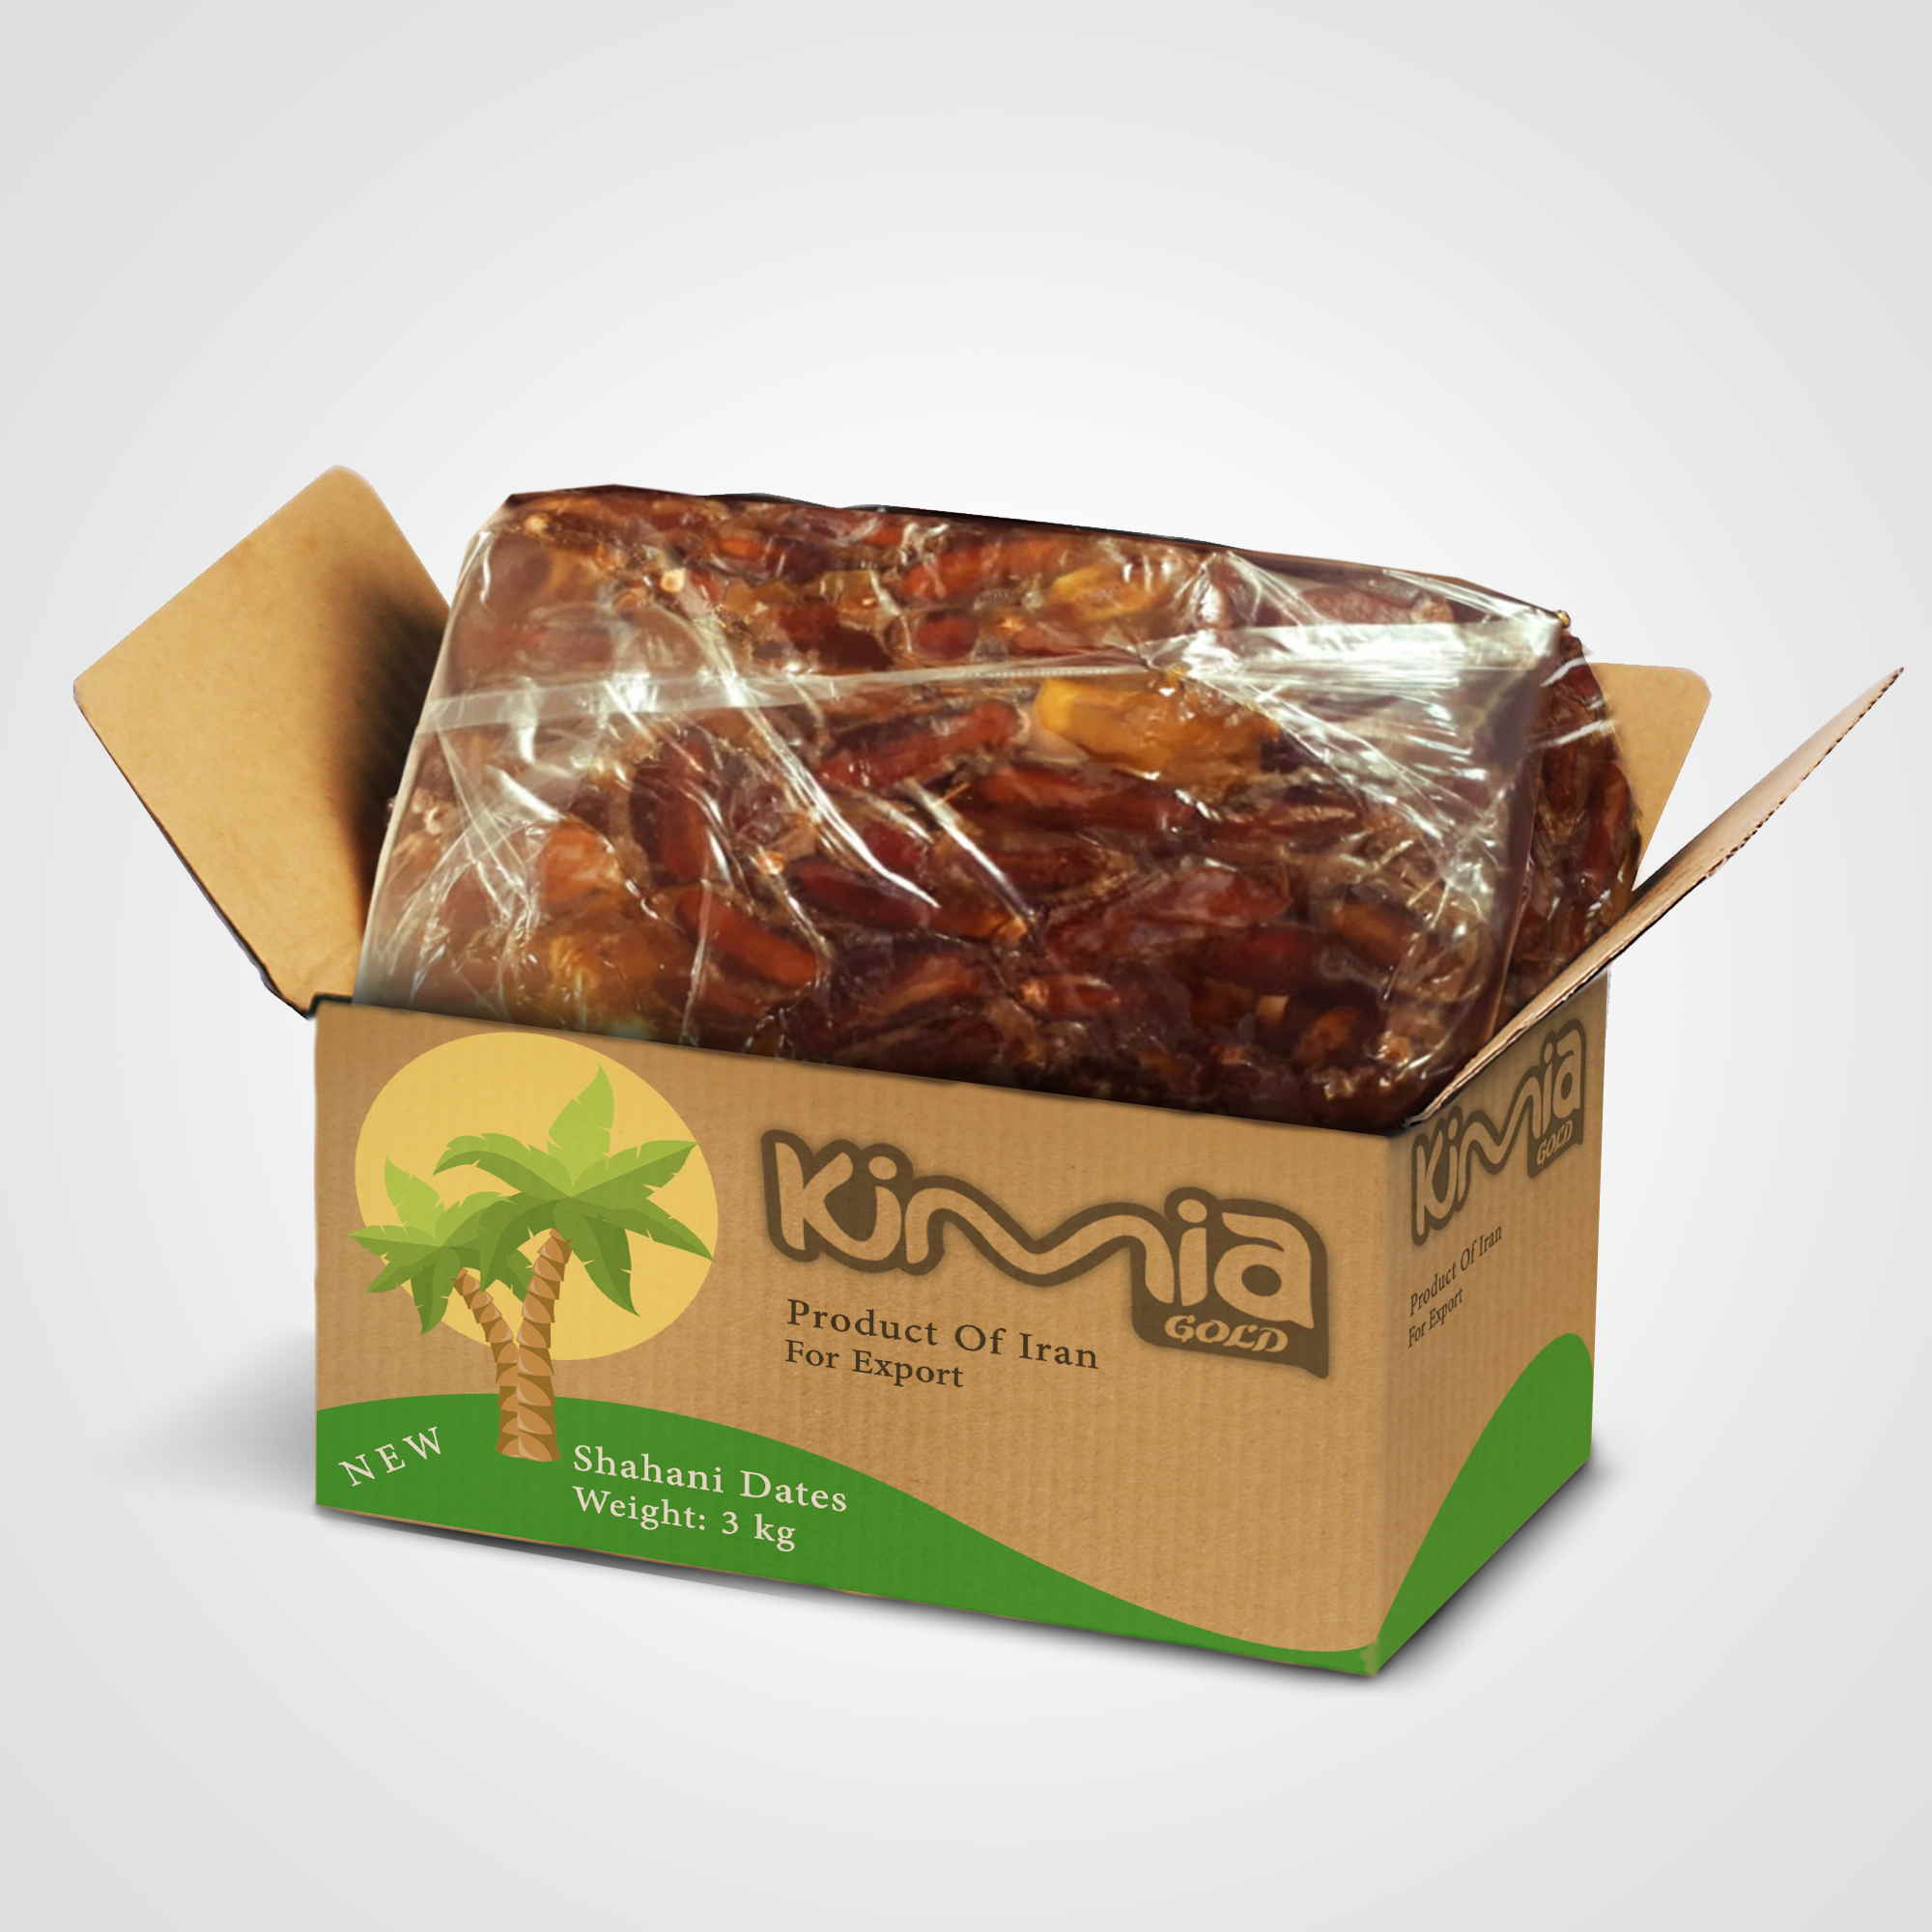 shahani dates single product